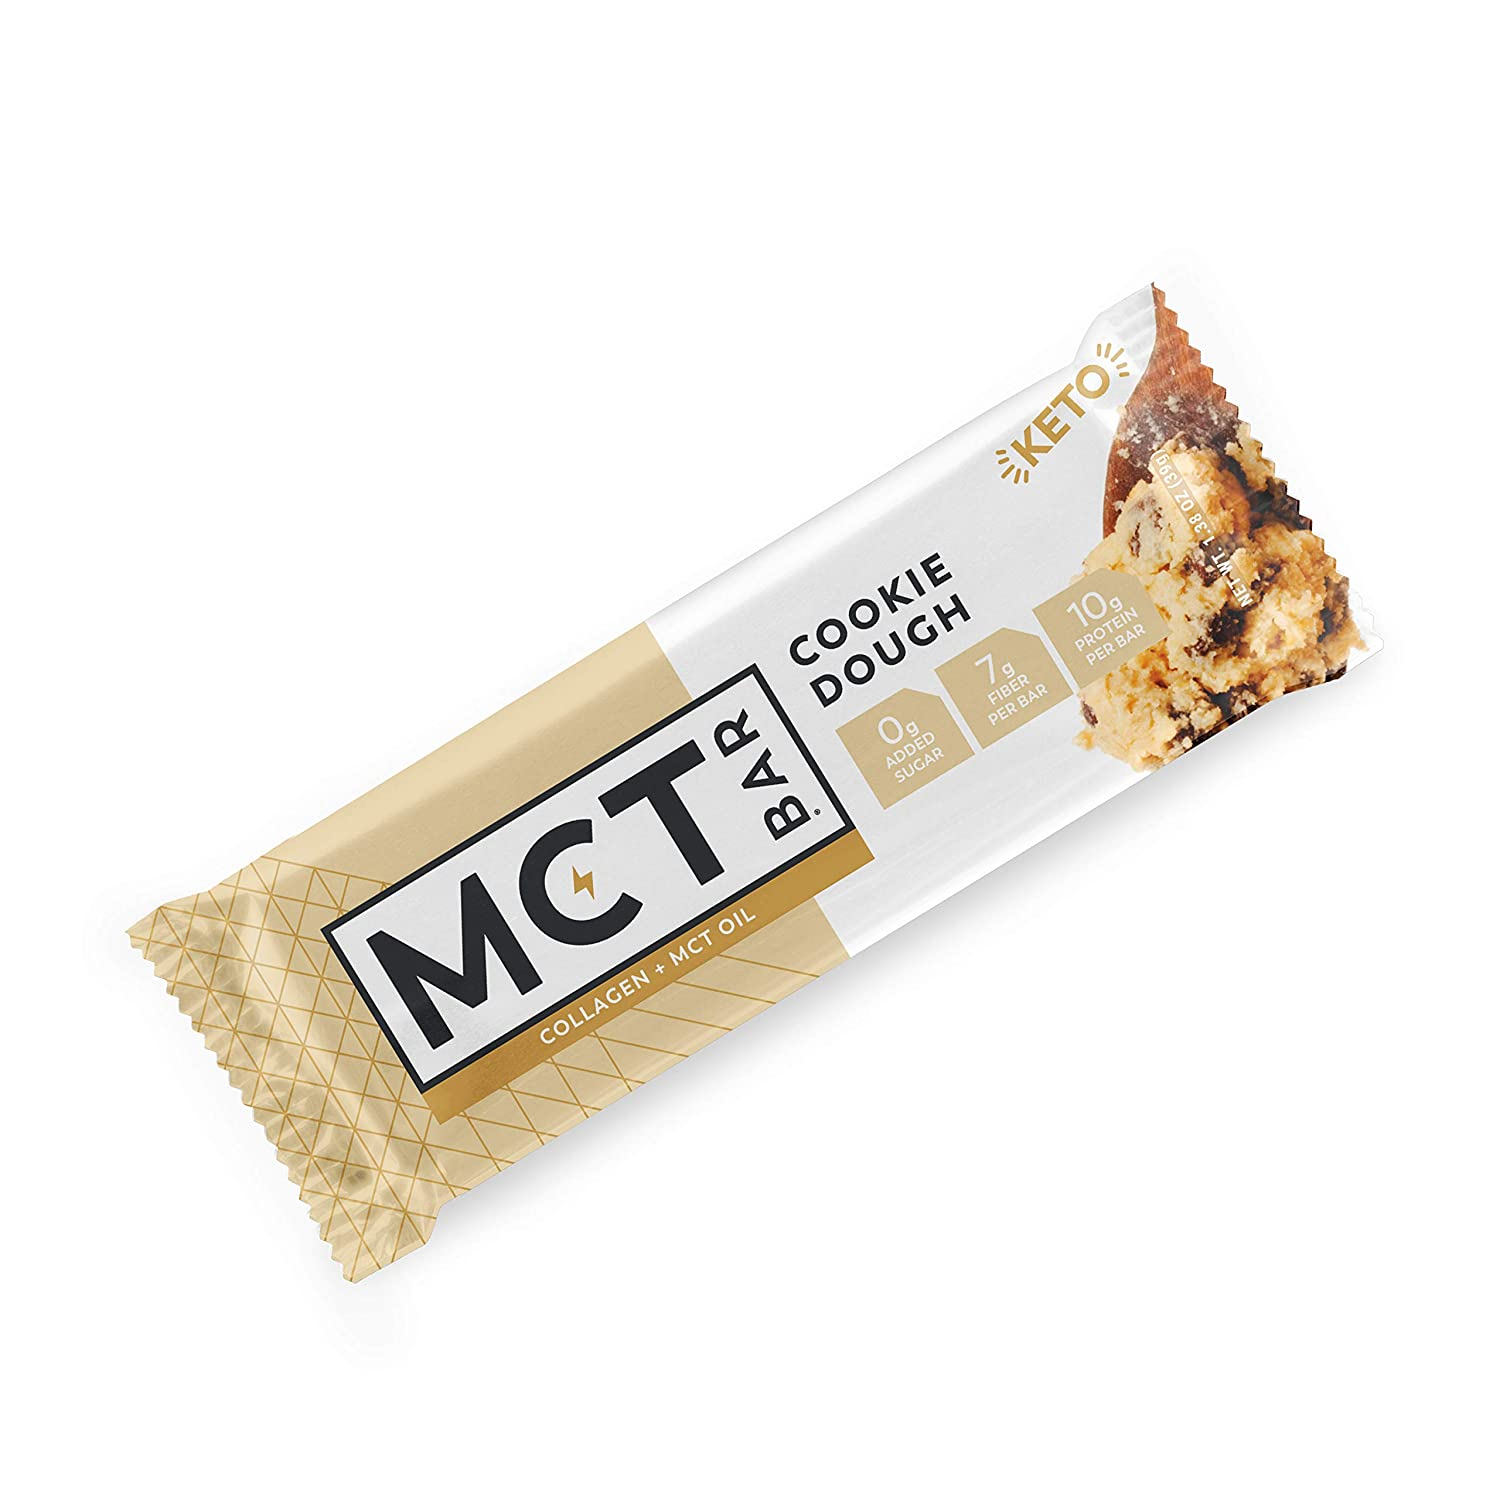 MCTBar Keto Protein Snack Bar, Cookie Dough (36 Pack) - Free of Gluten, Dairy, Soy & GMOs | 0g Added Sugar, Low Carb | Organic MCT Oil, Collagen, Fiber, Natural Monk Fruit